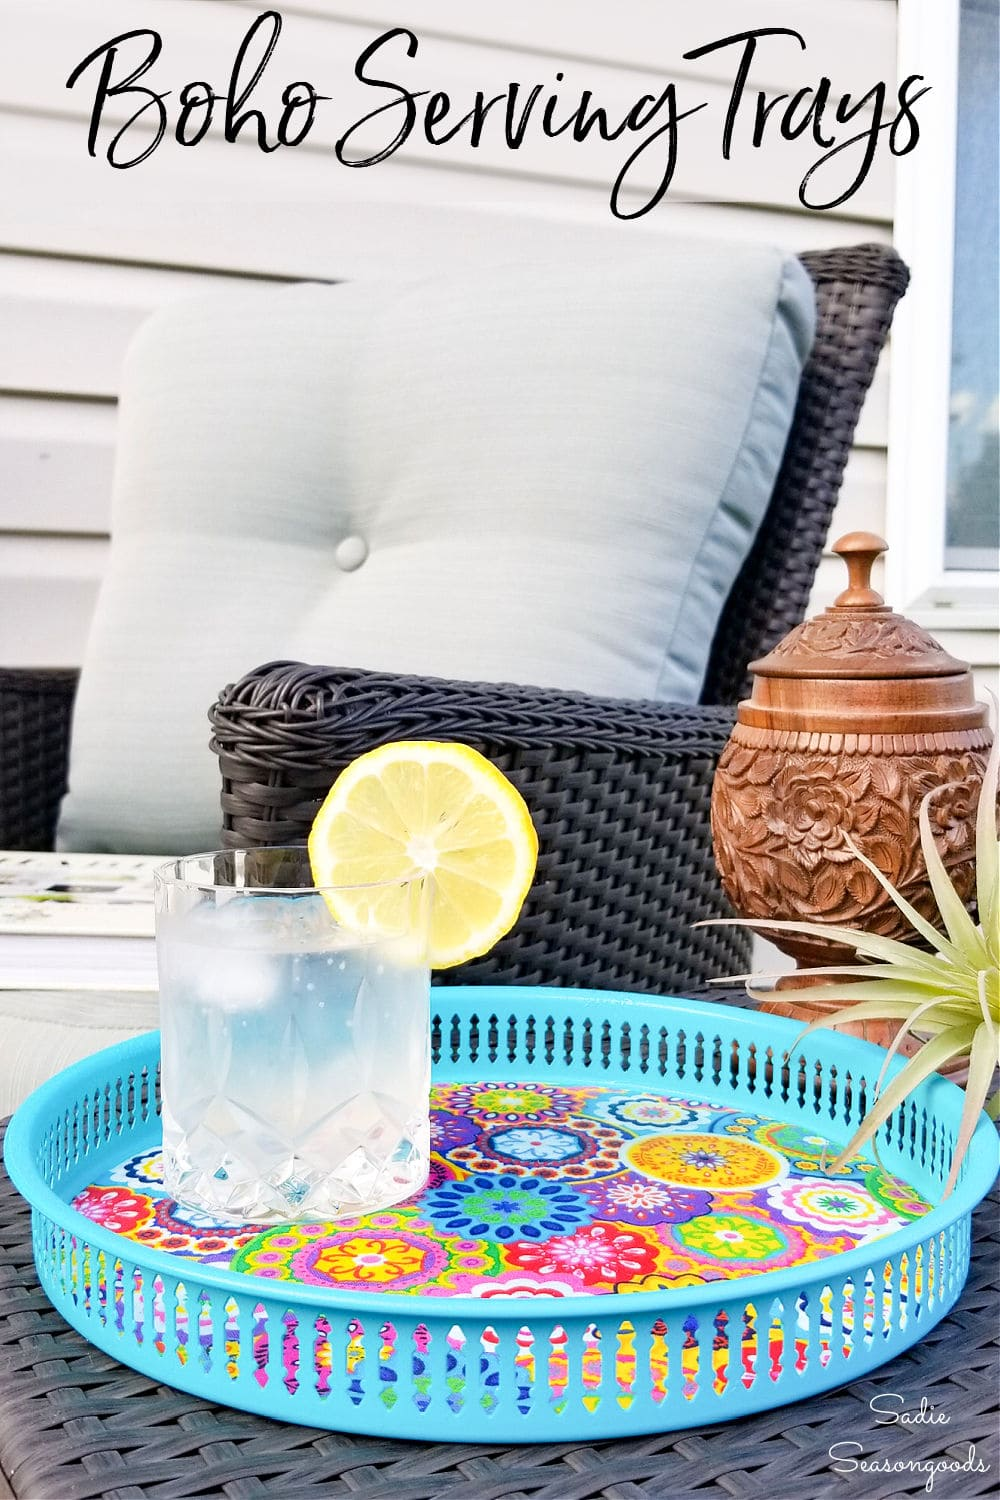 outdoor serving trays